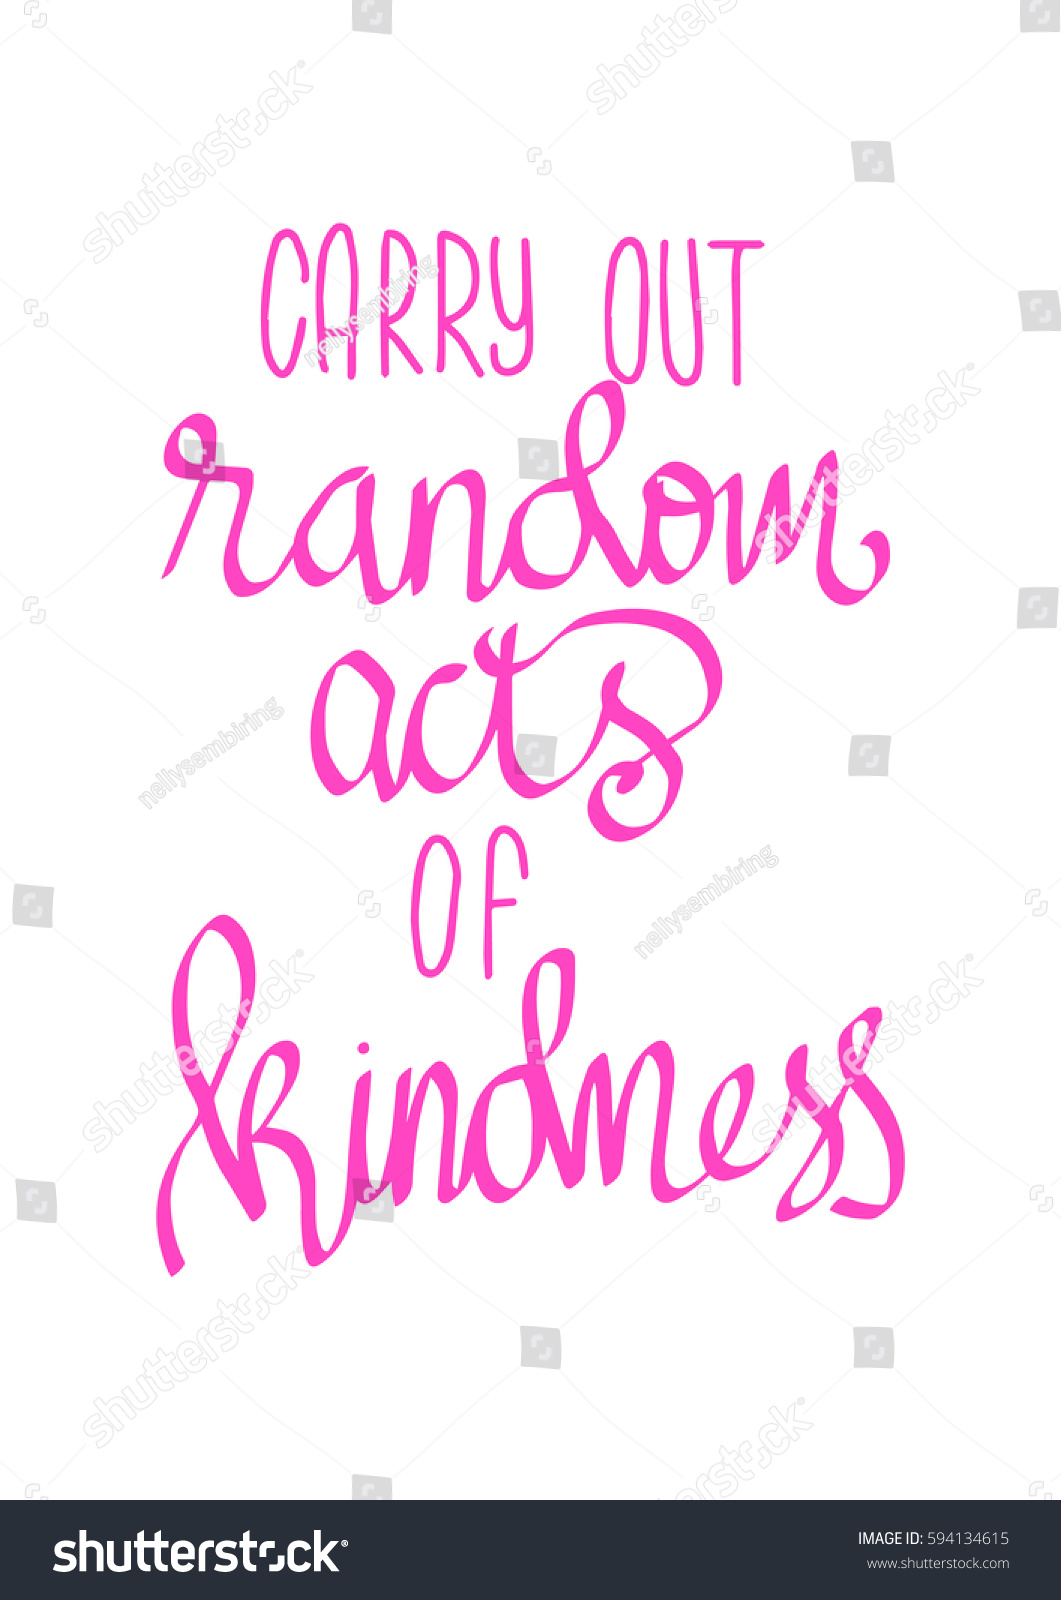 Quote About Kindness Carry Out Random Acts Kindness Hand Stock Vector 594134615